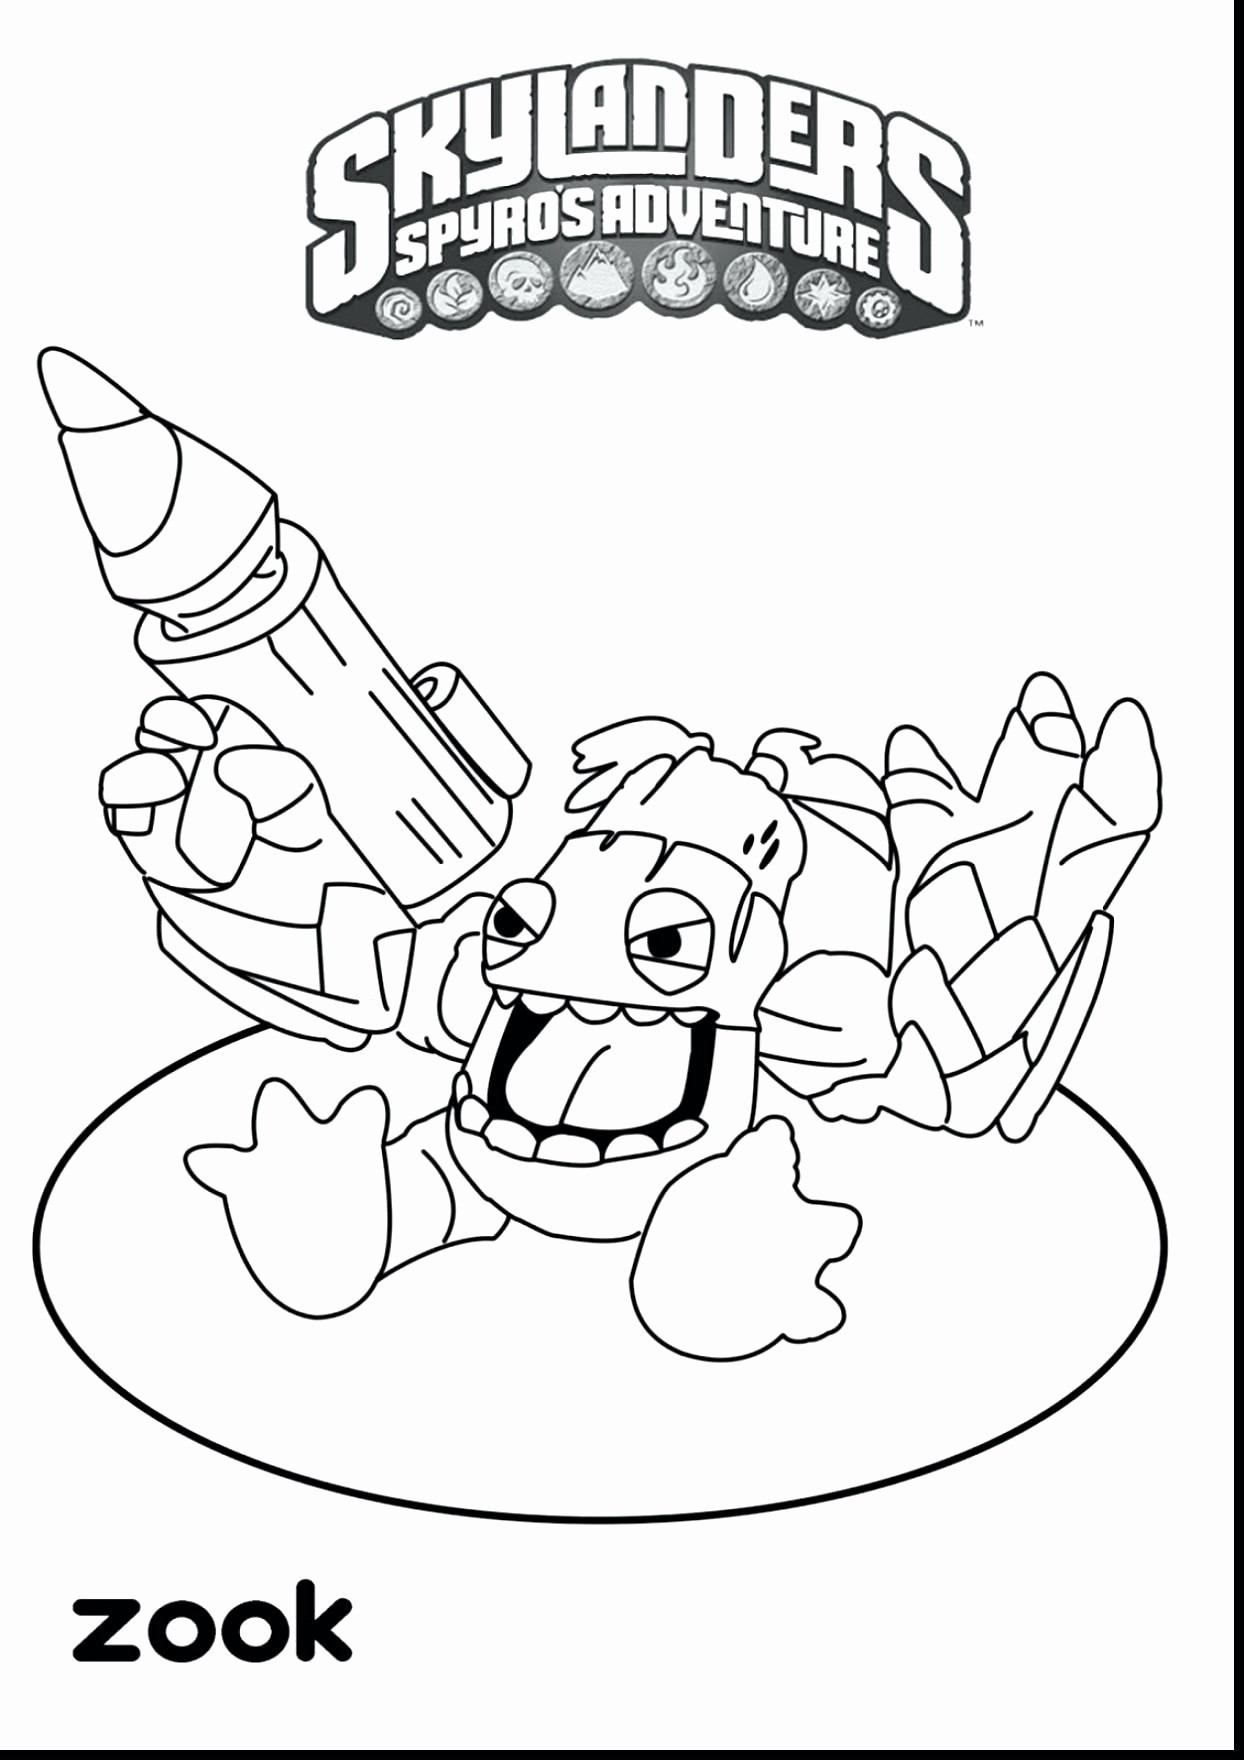 Ausmalbilder Ninja Turtles Das Beste Von Ninja Turtles Coloring Pages Get This Michelangelo Teenage Mutant Fotos